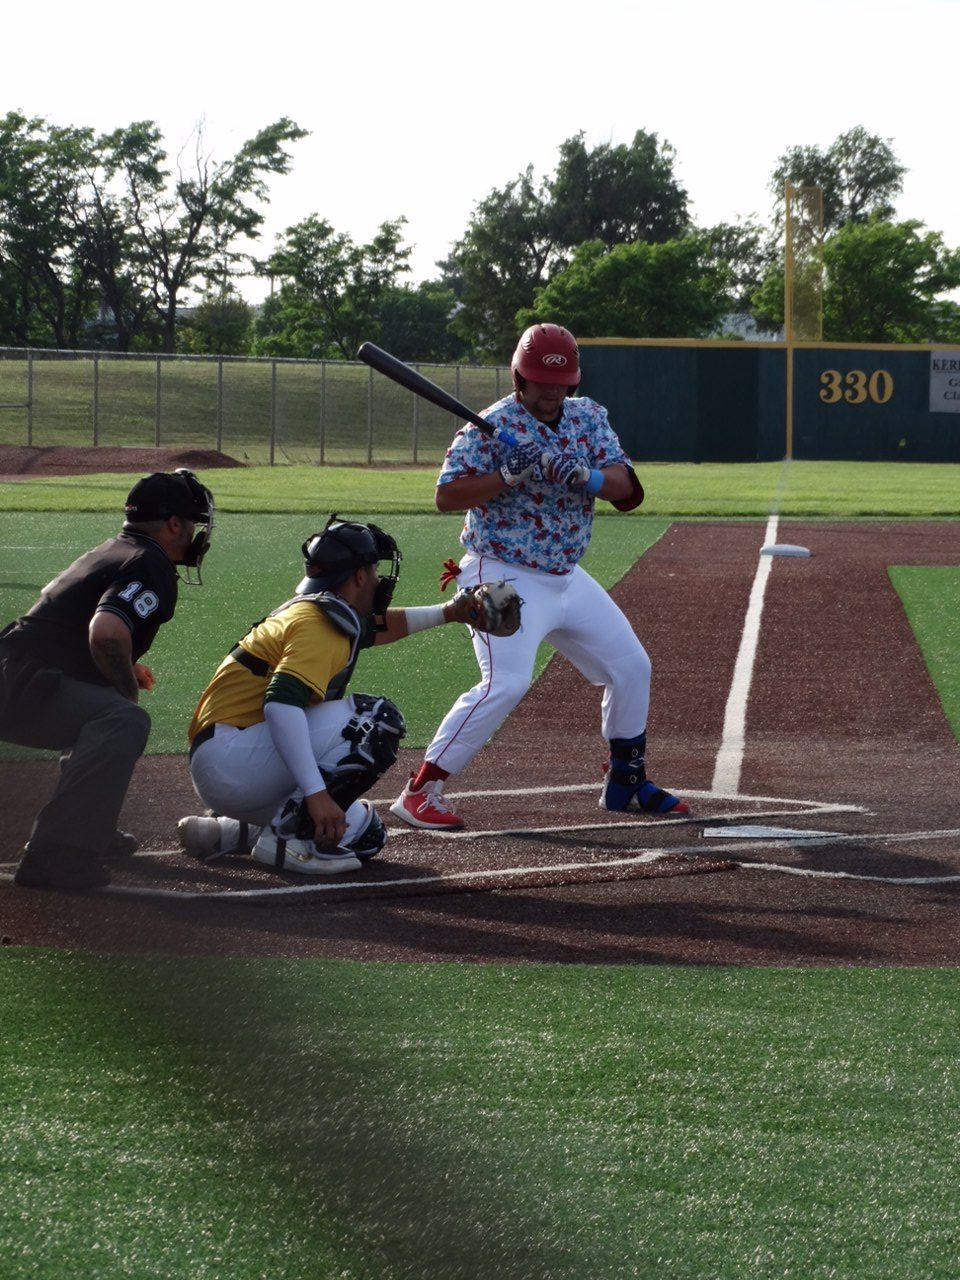 Bee Jays Clamp Down on Dodge City in KCLB Opener